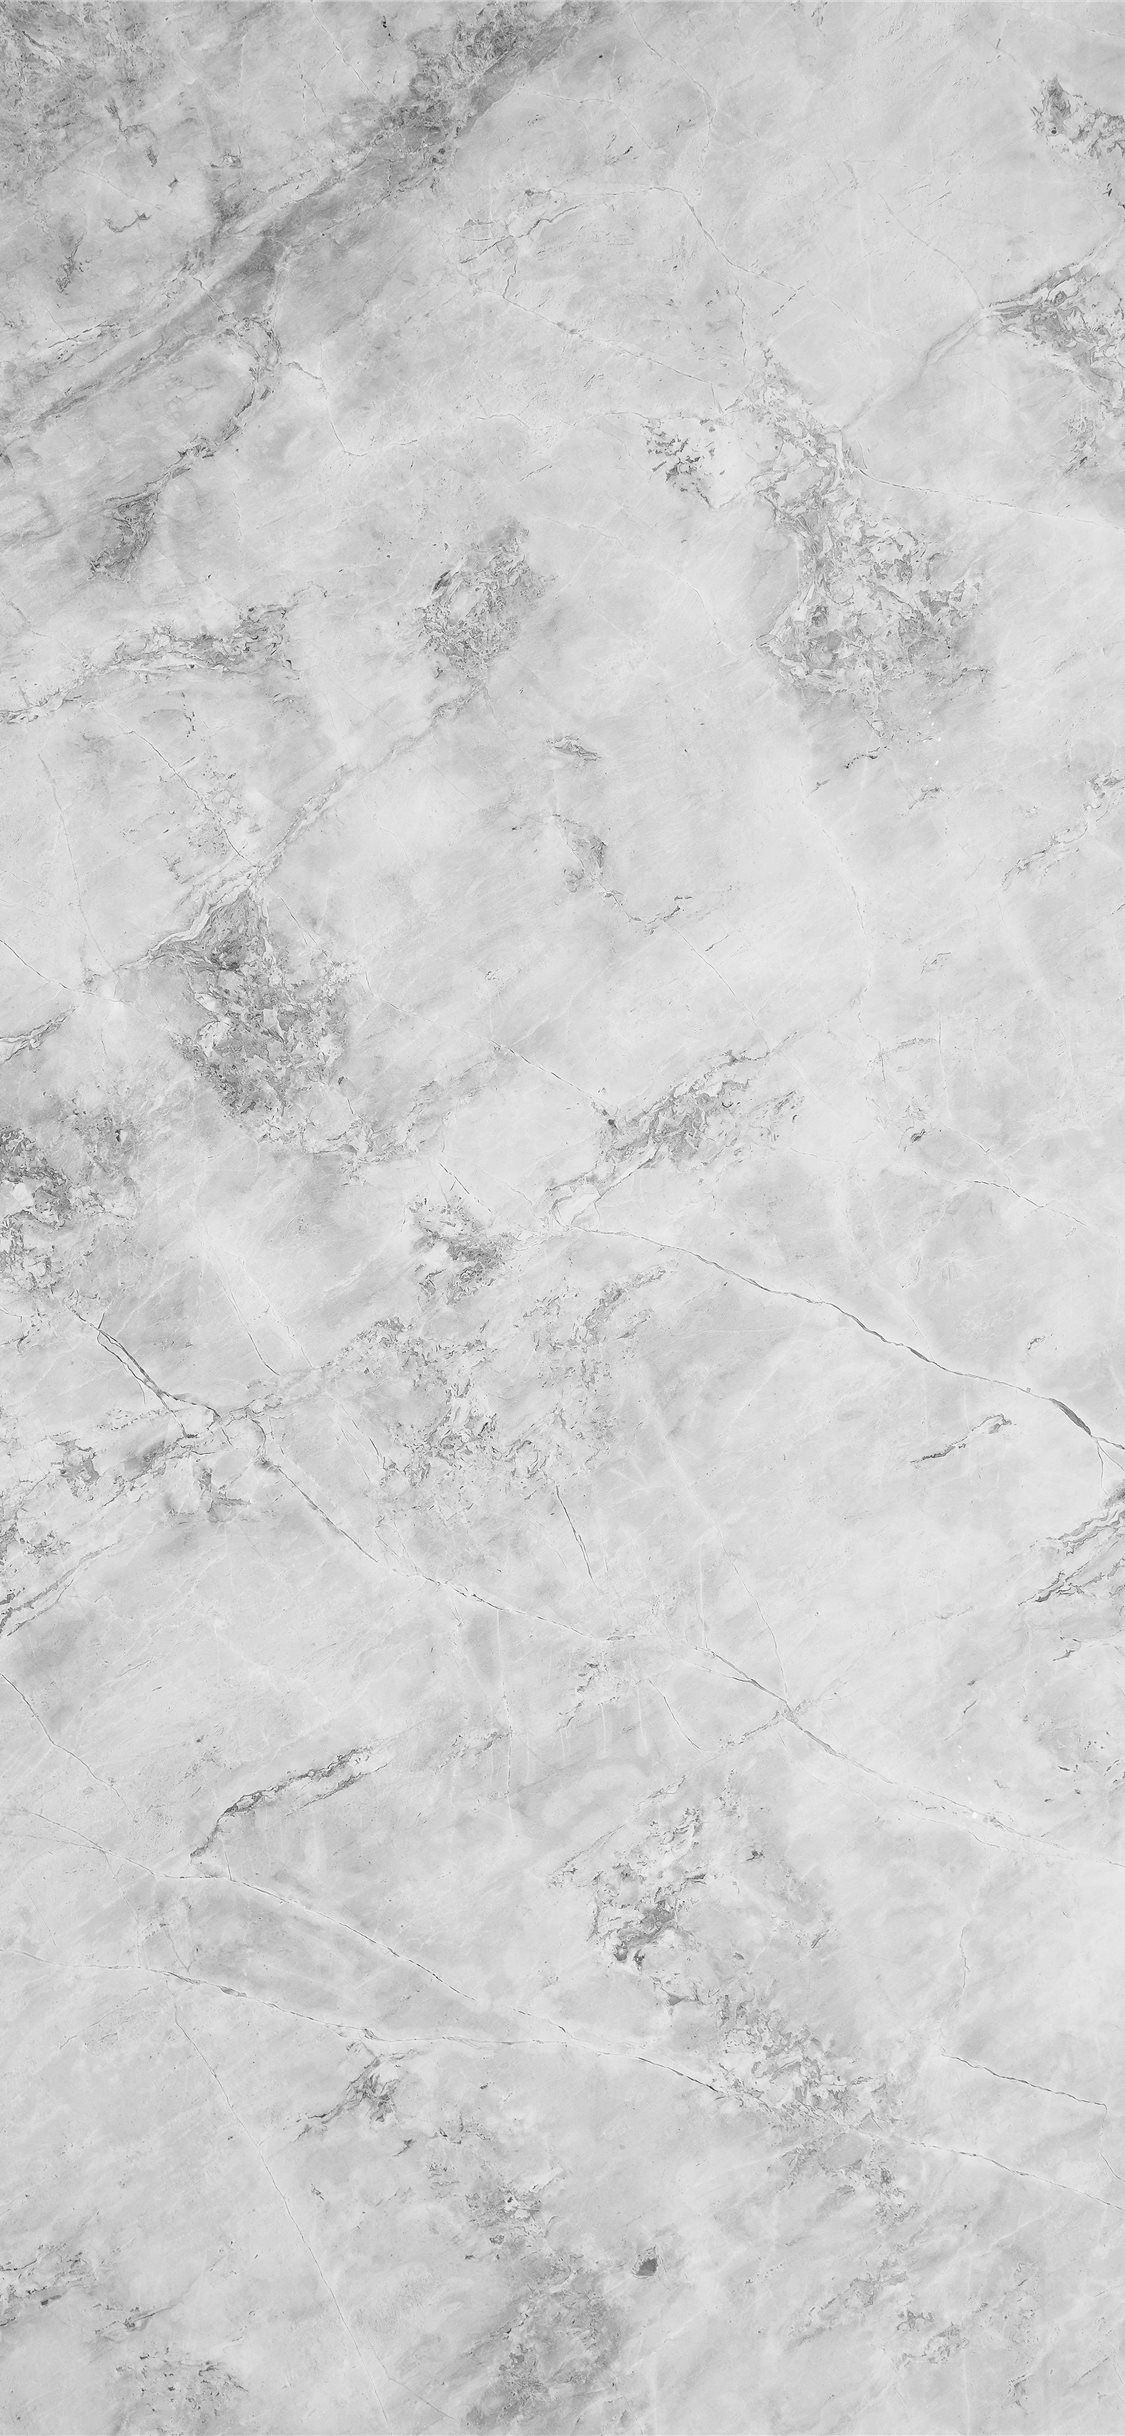 Greyish Stone Background I Forget What Kind Of Stone Ha Flip It And It Is Great In Landscape Orientation Too Ilikewallpape Iphone X Wallpapers In 2019